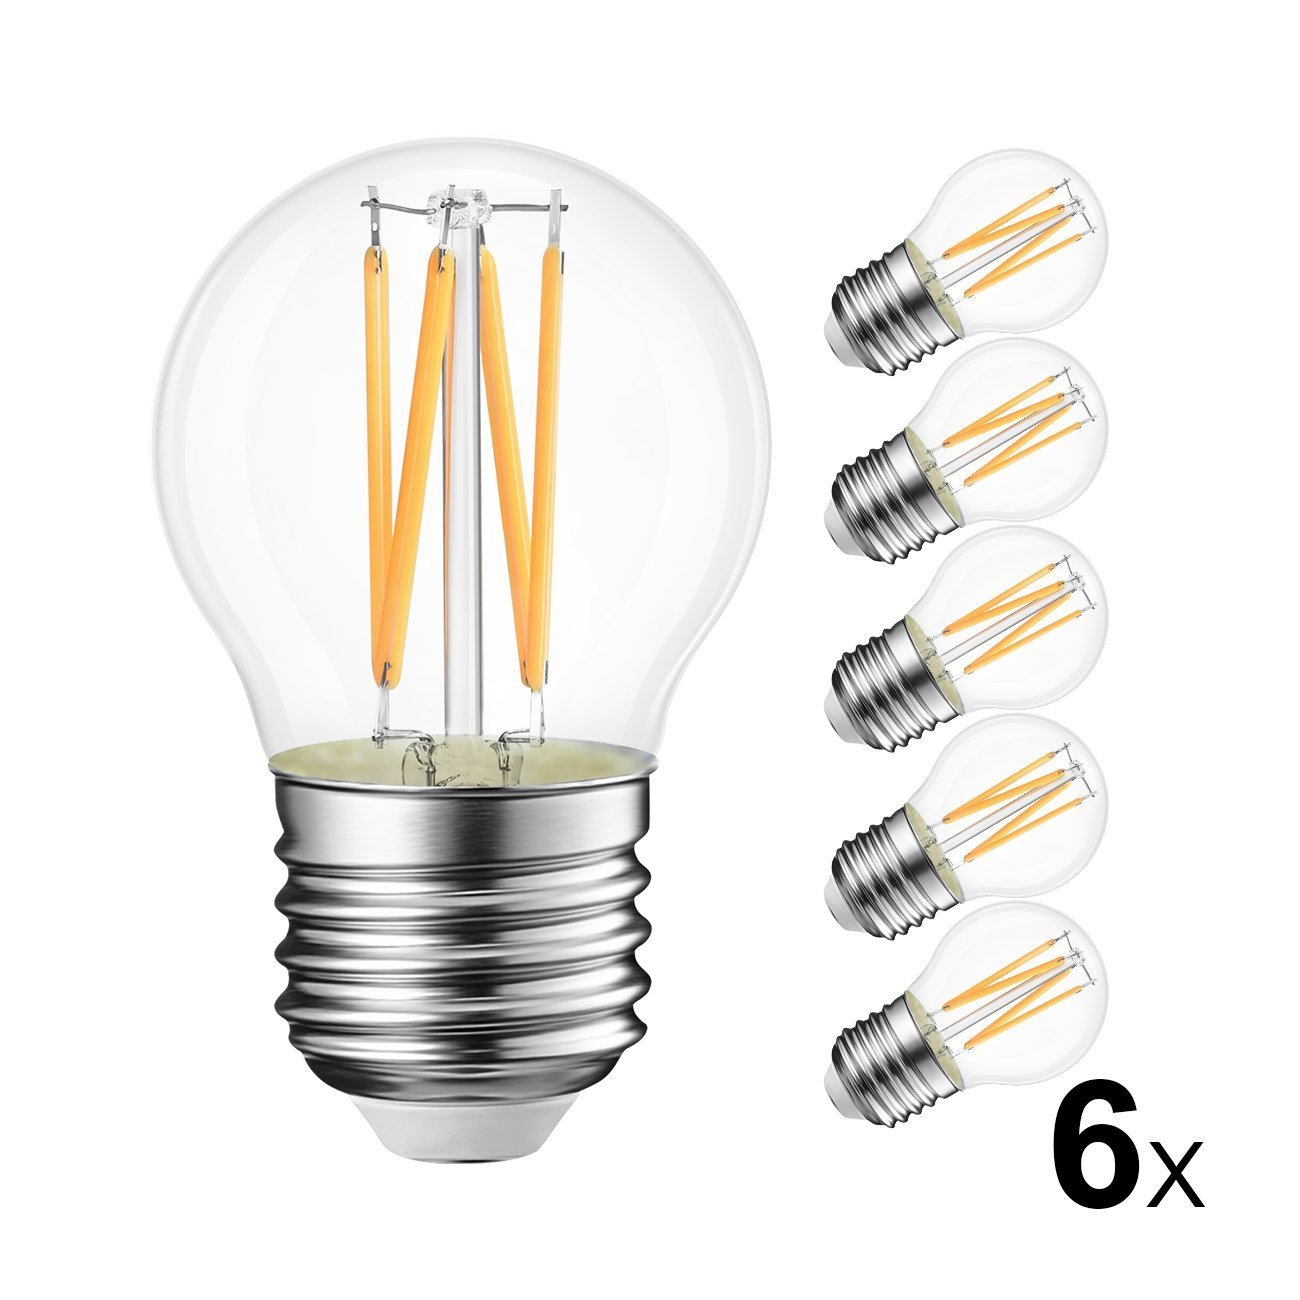 10x 40w Golfball Incandescent Dimmable Standard Clear ES E27 Light Bulb Lamp